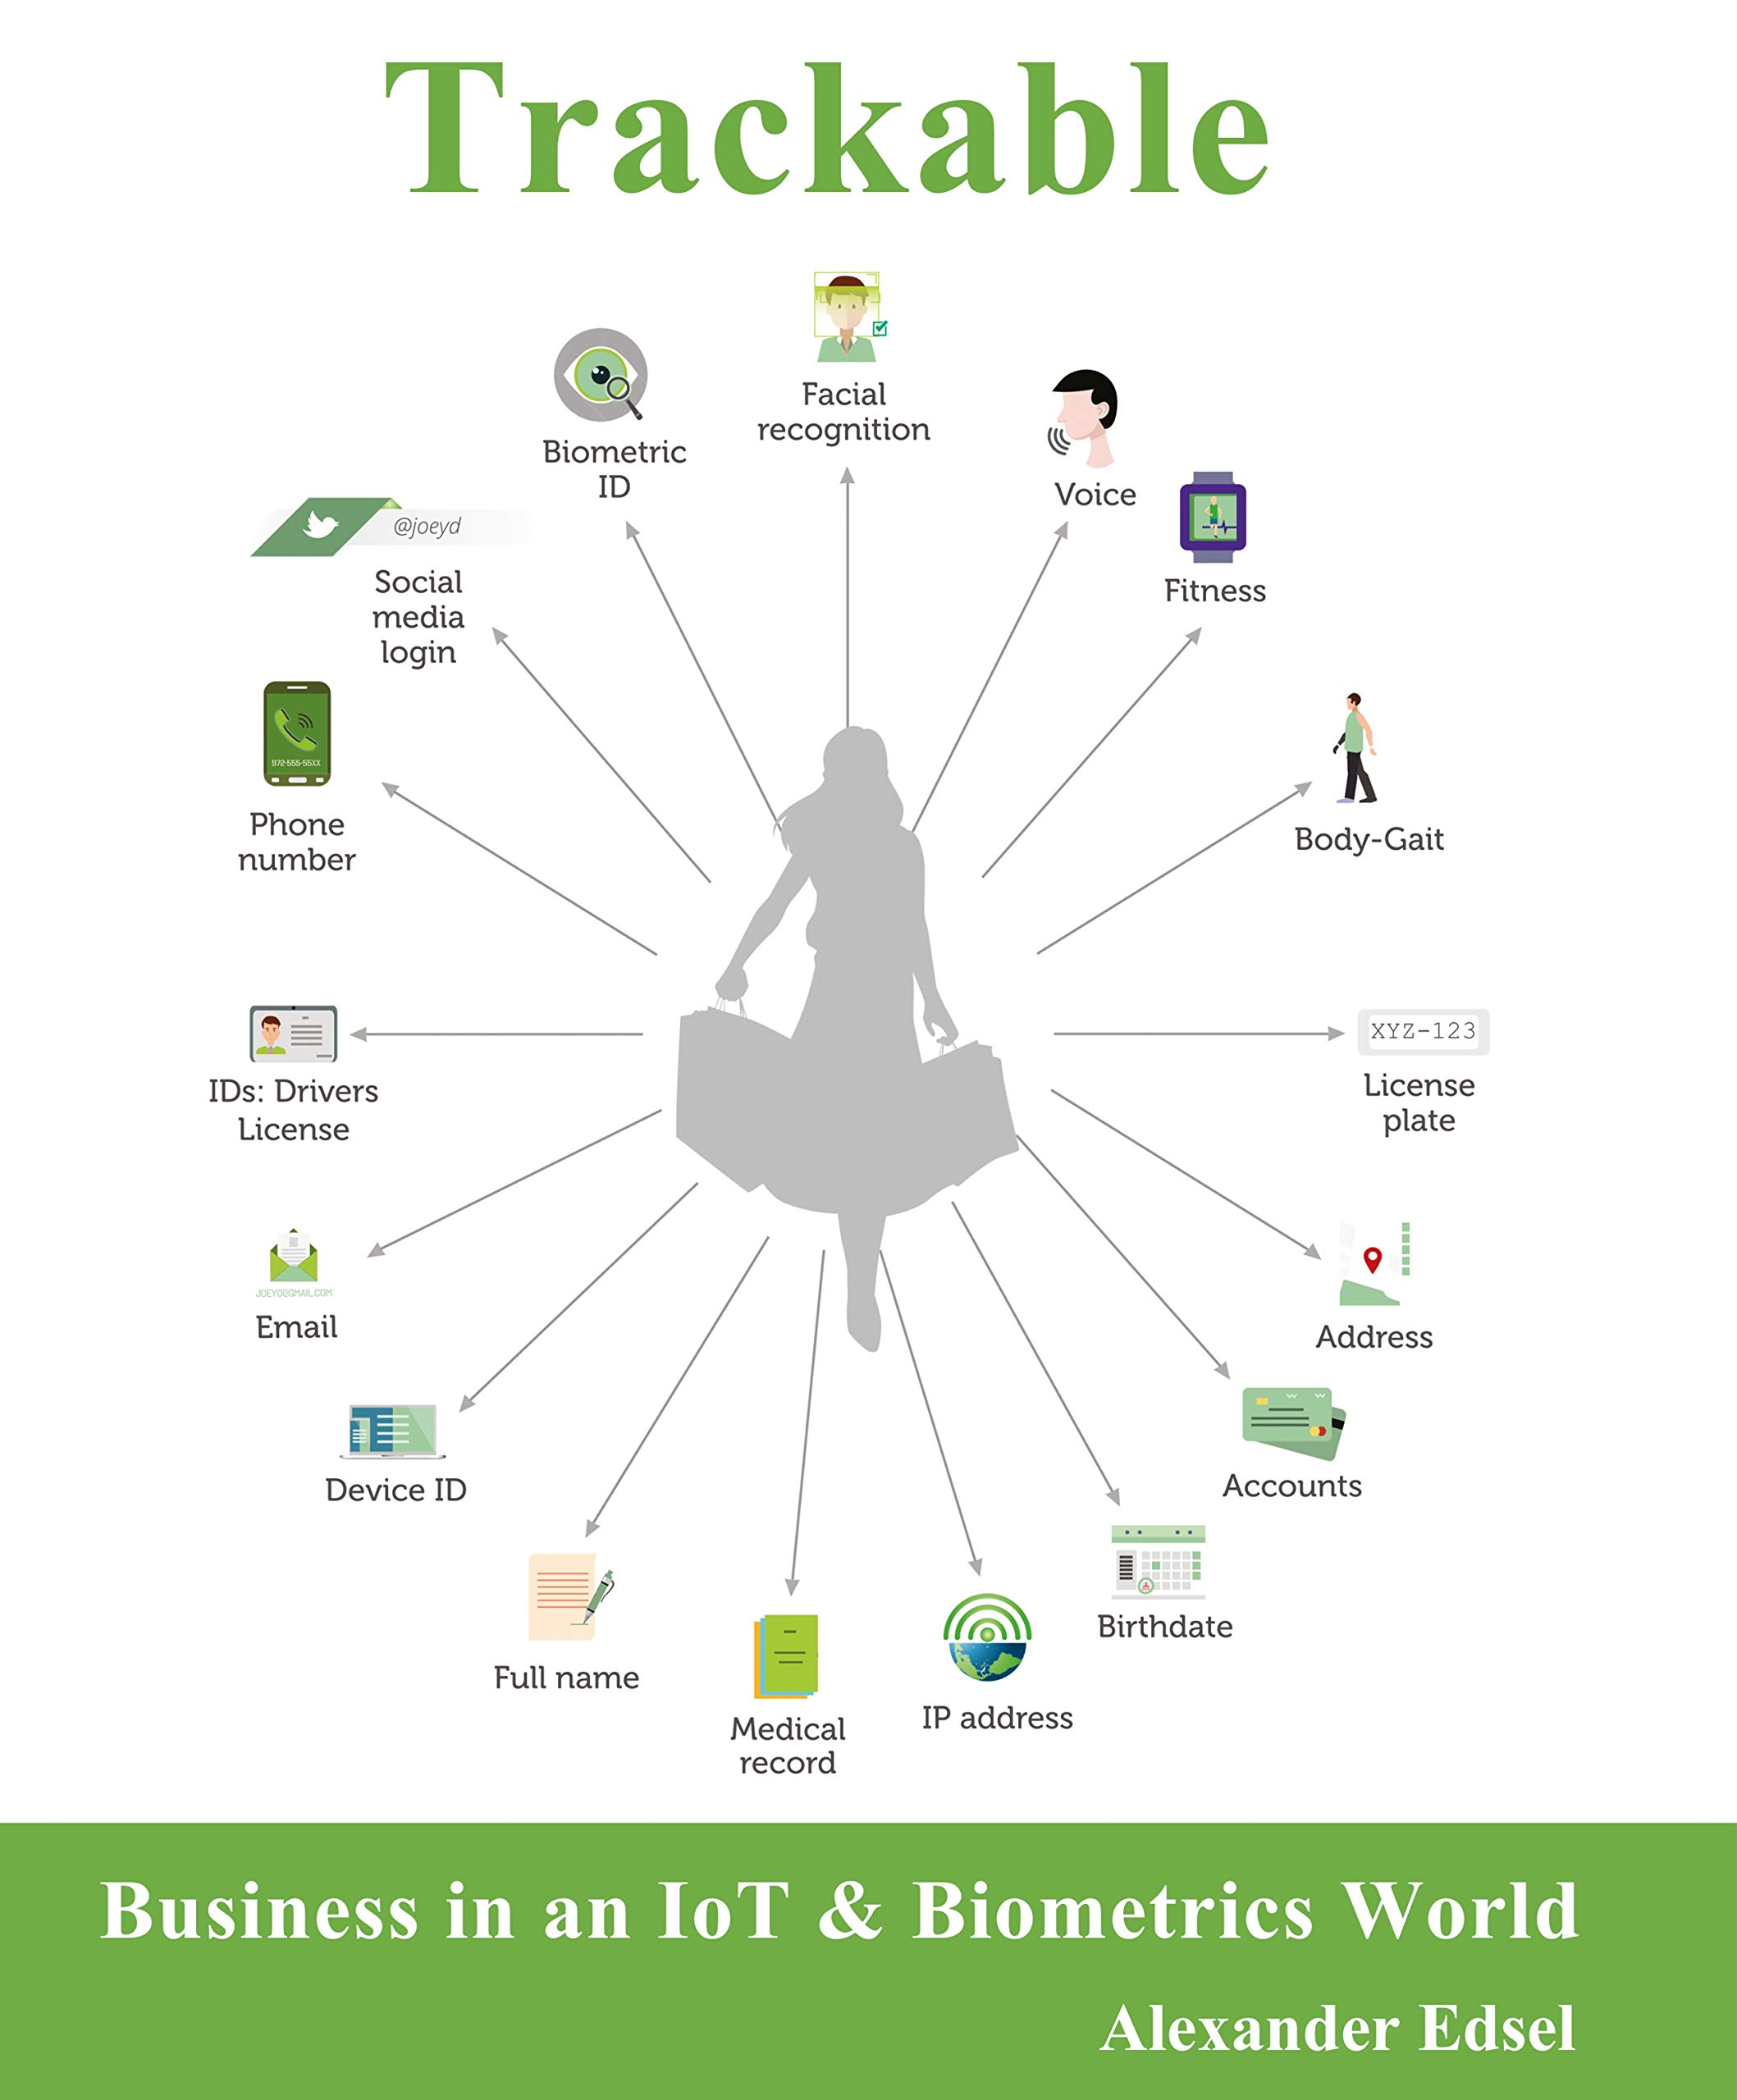 Trackable: Business in an IoT & Biometrics World